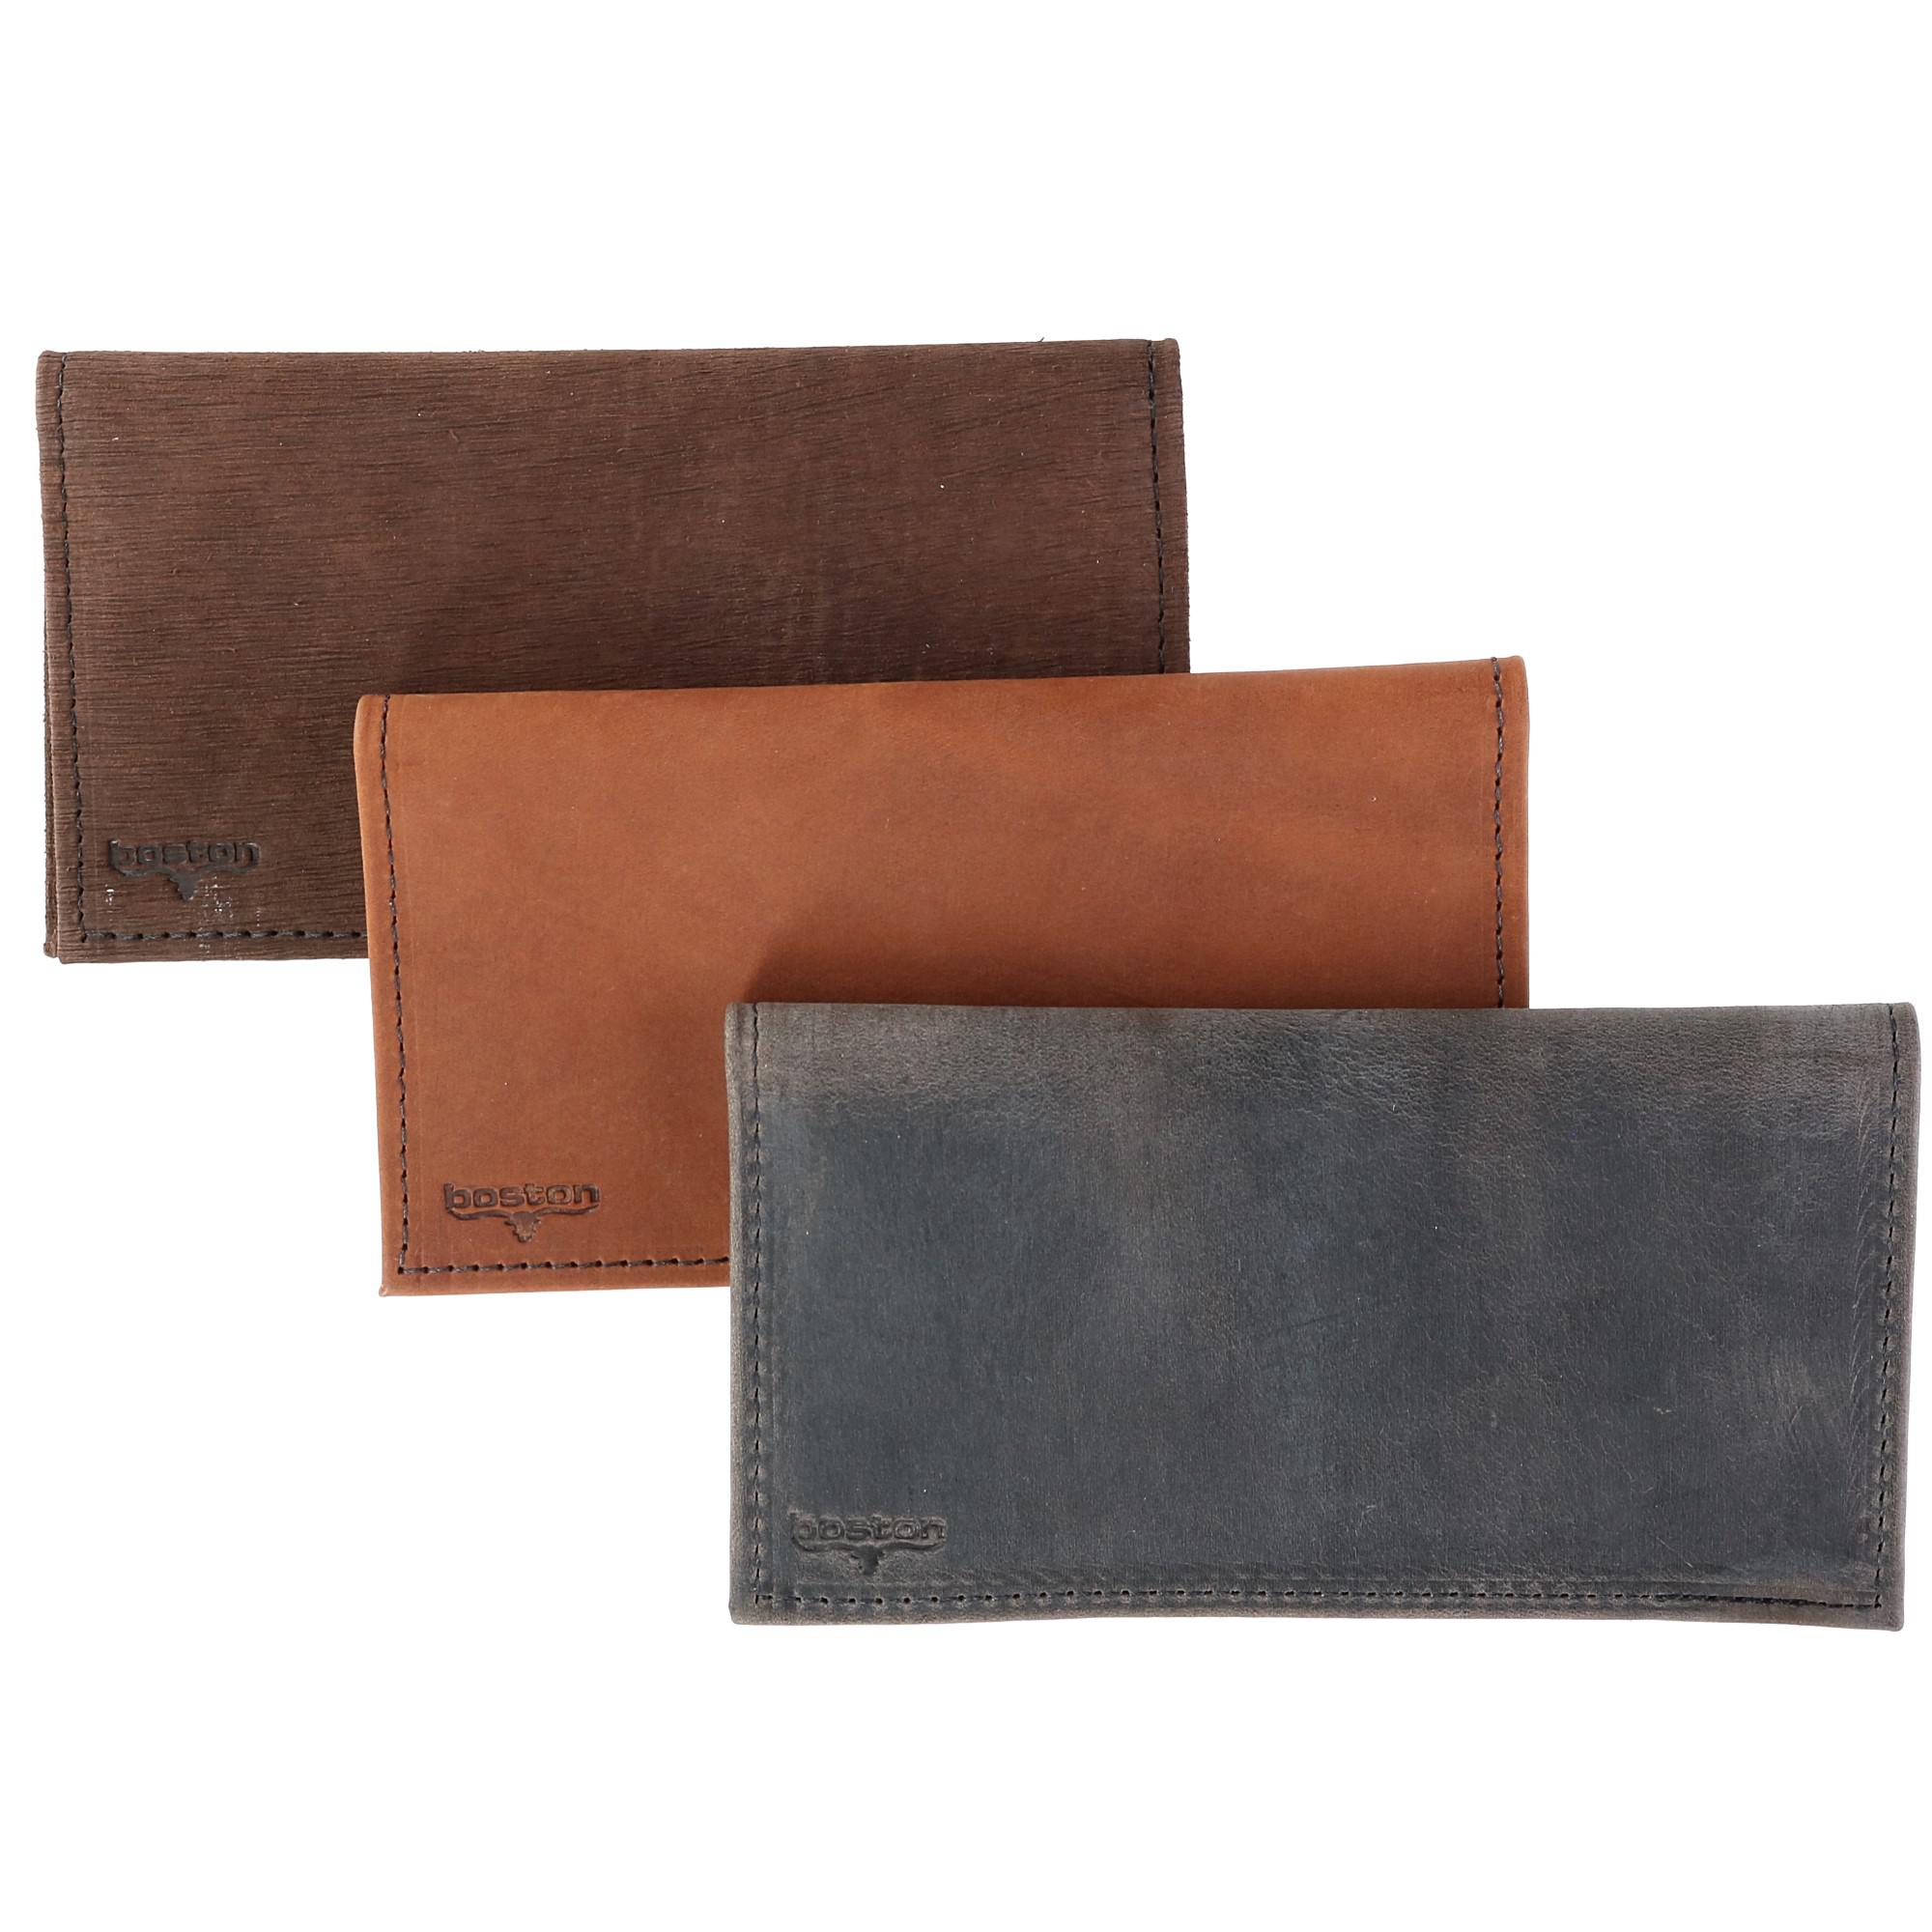 Boston Leather Multi Leather Checkbook Cover Set (Pack of 3) - image 4 of 6